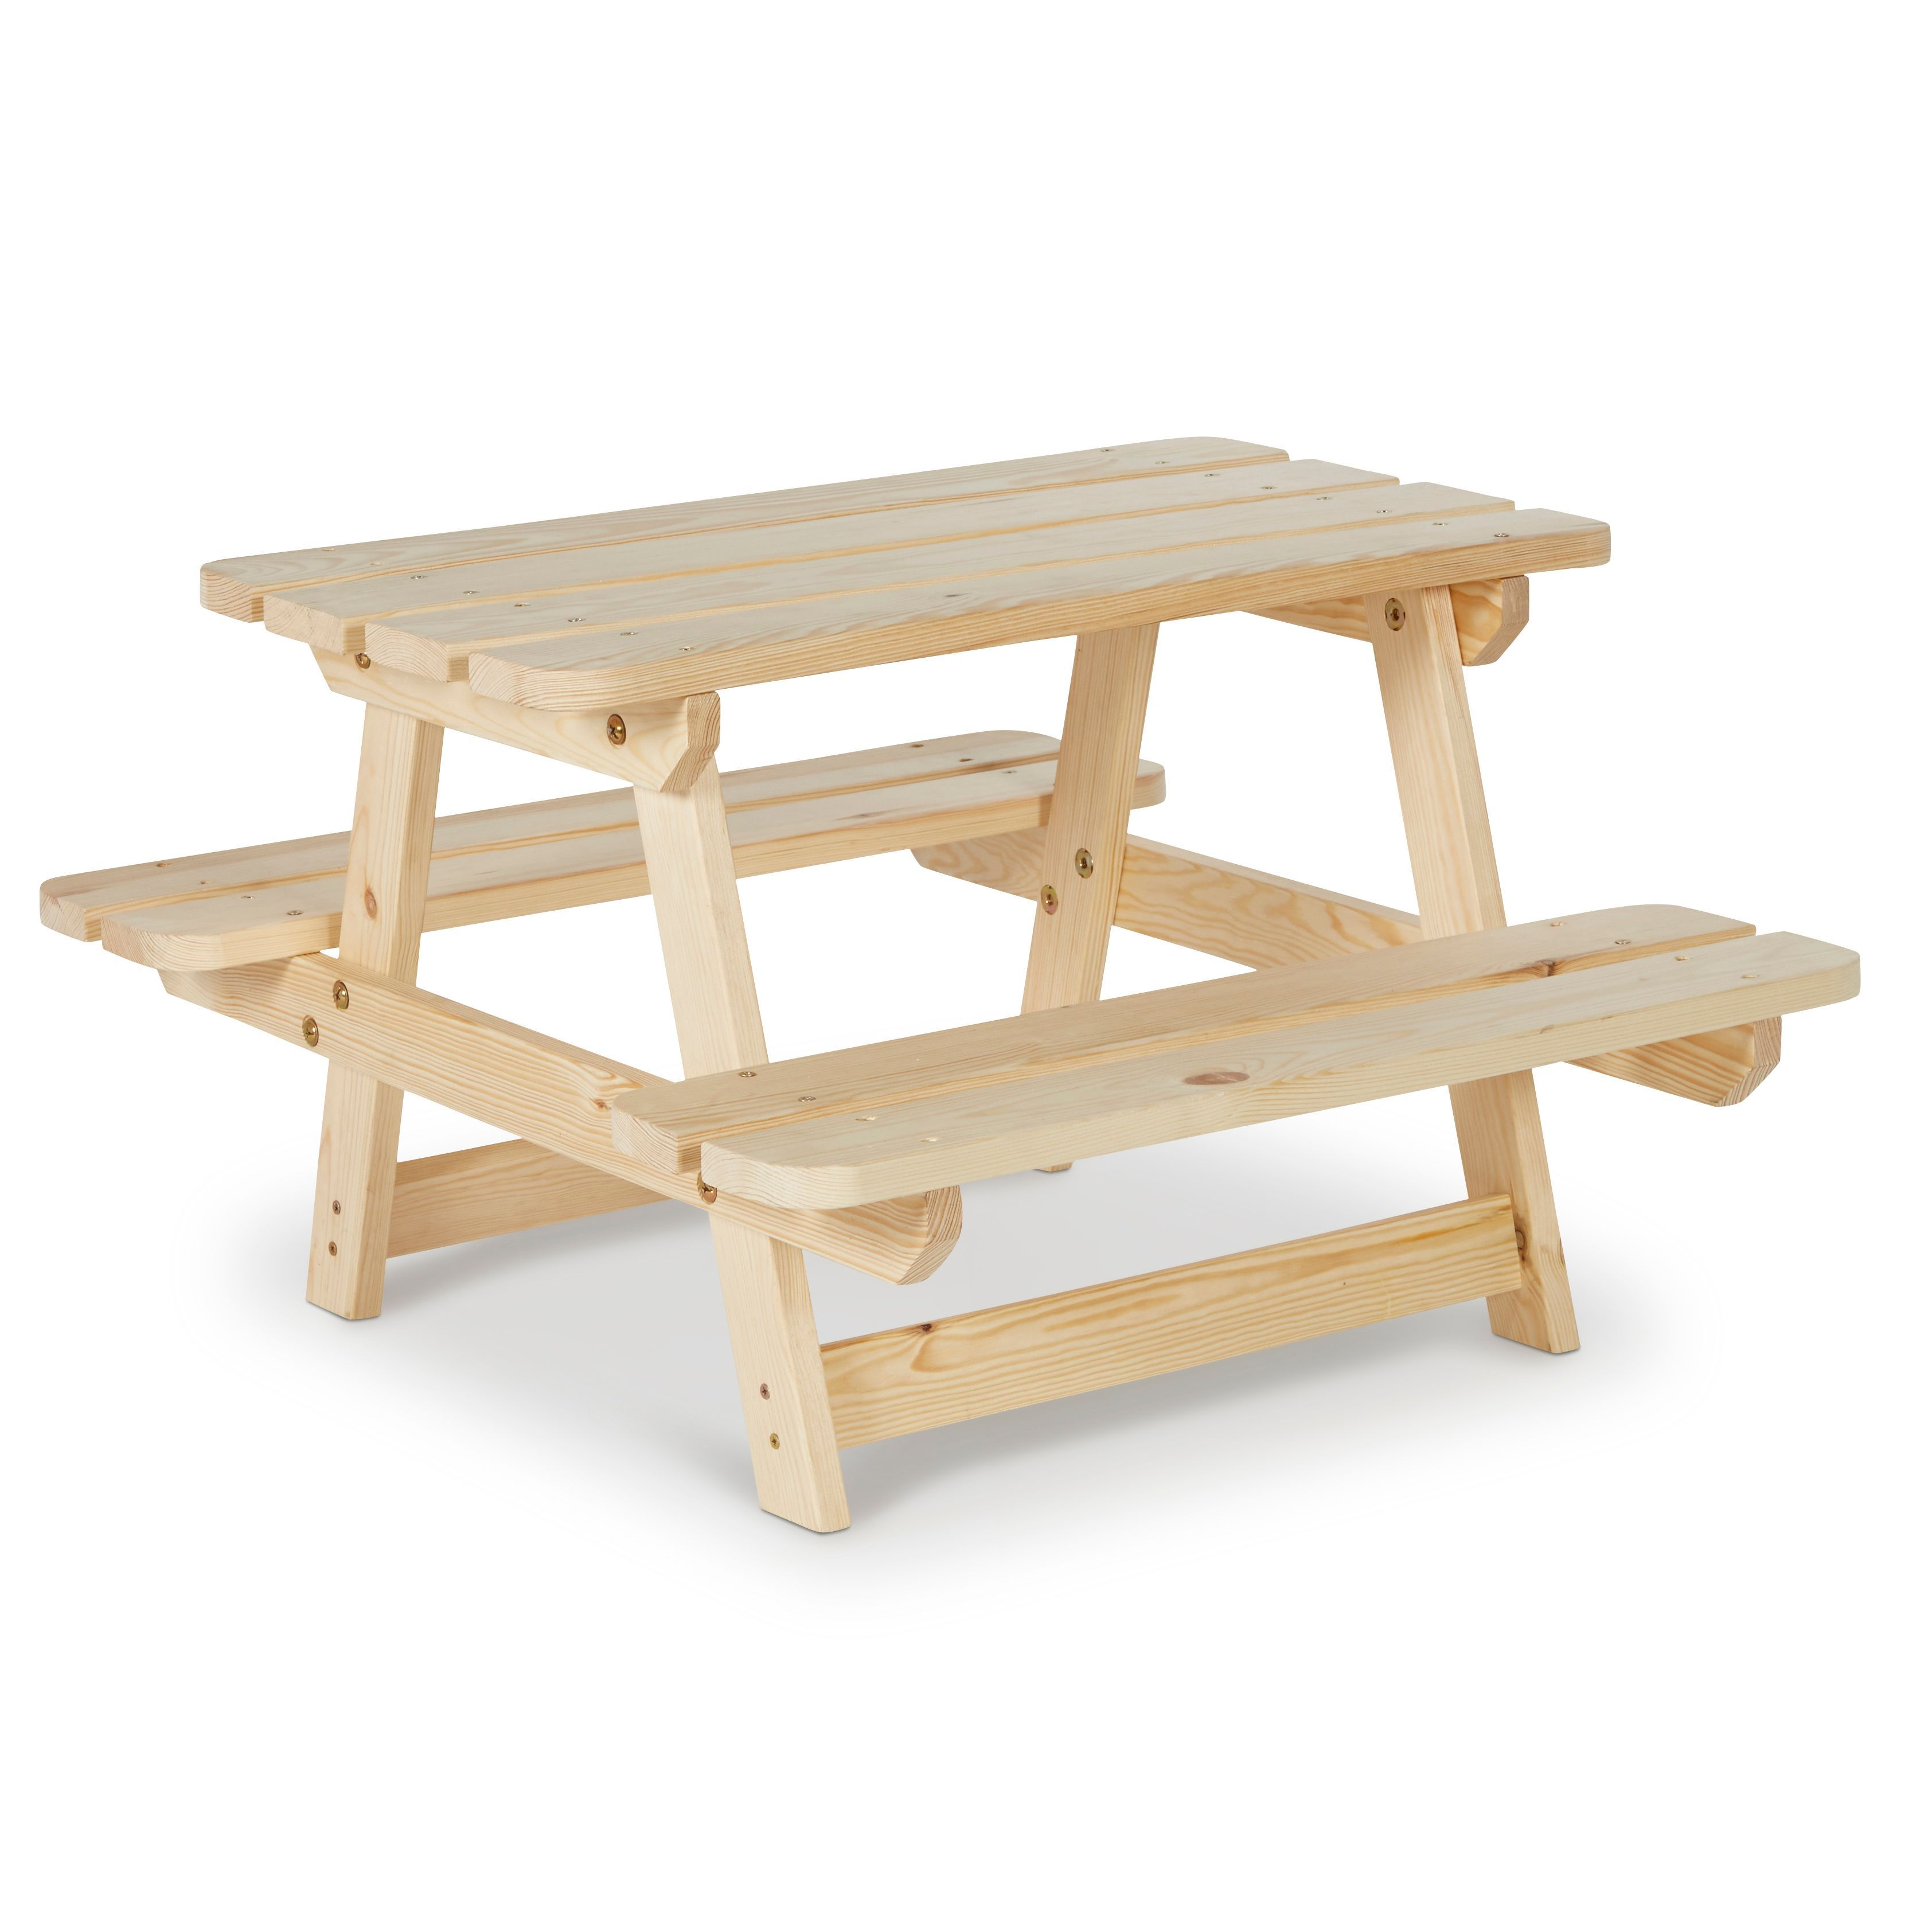 Wooden Kids Picnic Table Image Collections Bar Height